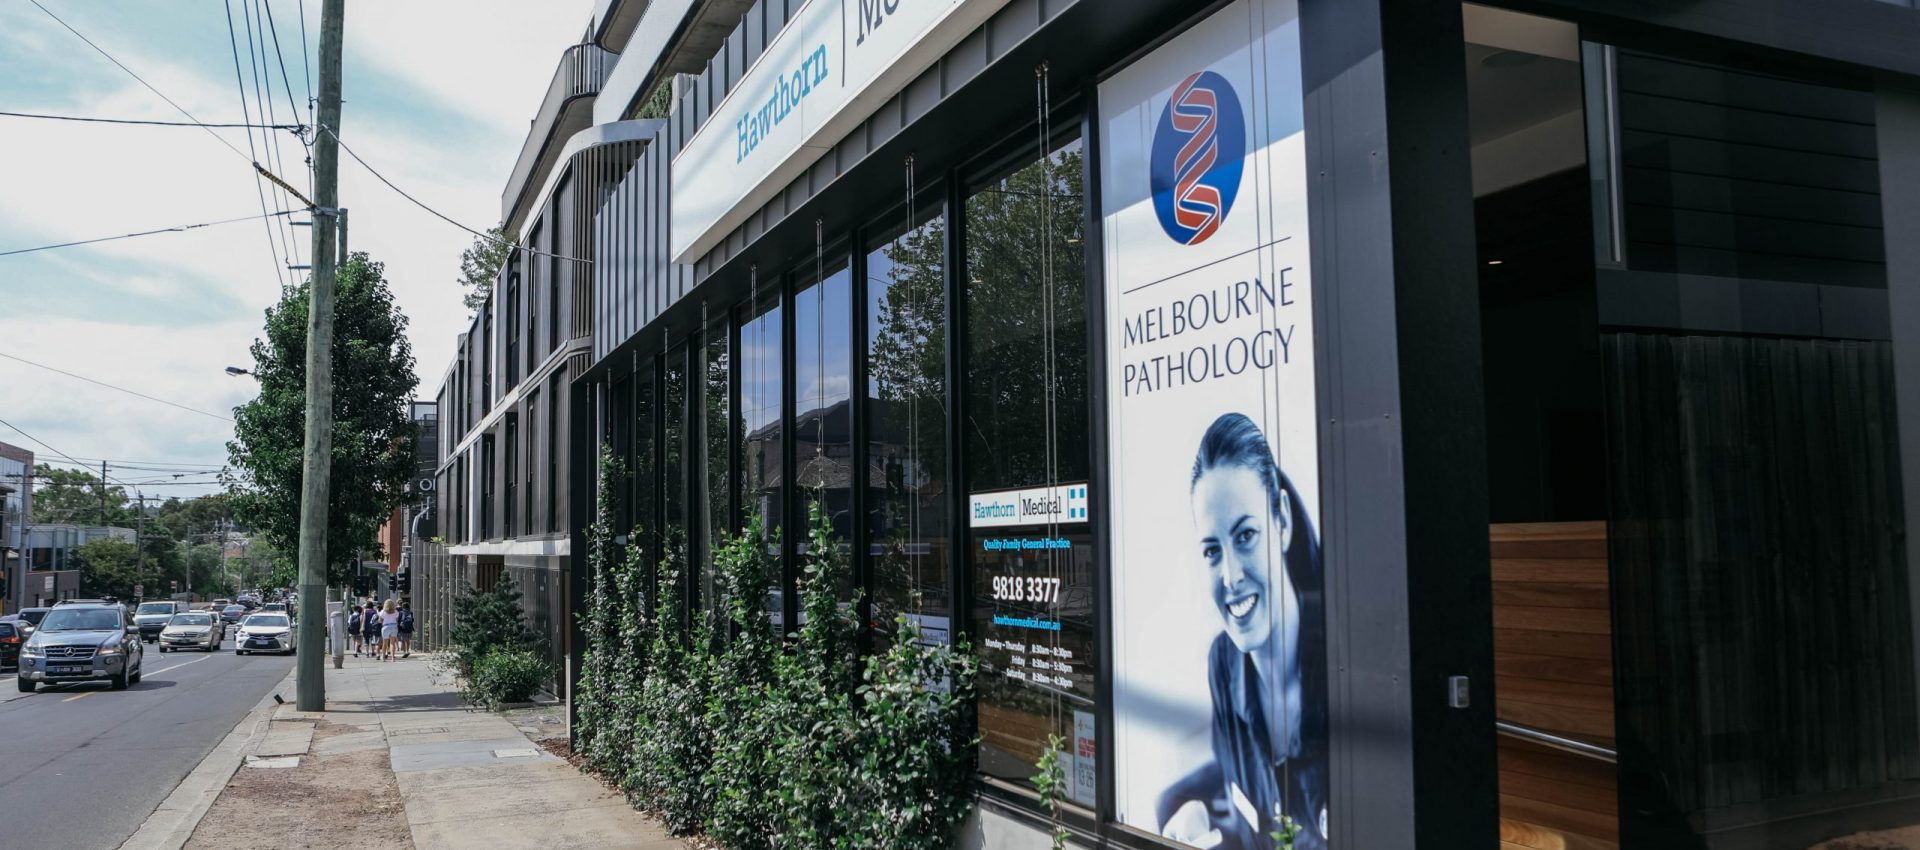 Affiliated with Richmond Medical & South Yarra Medical